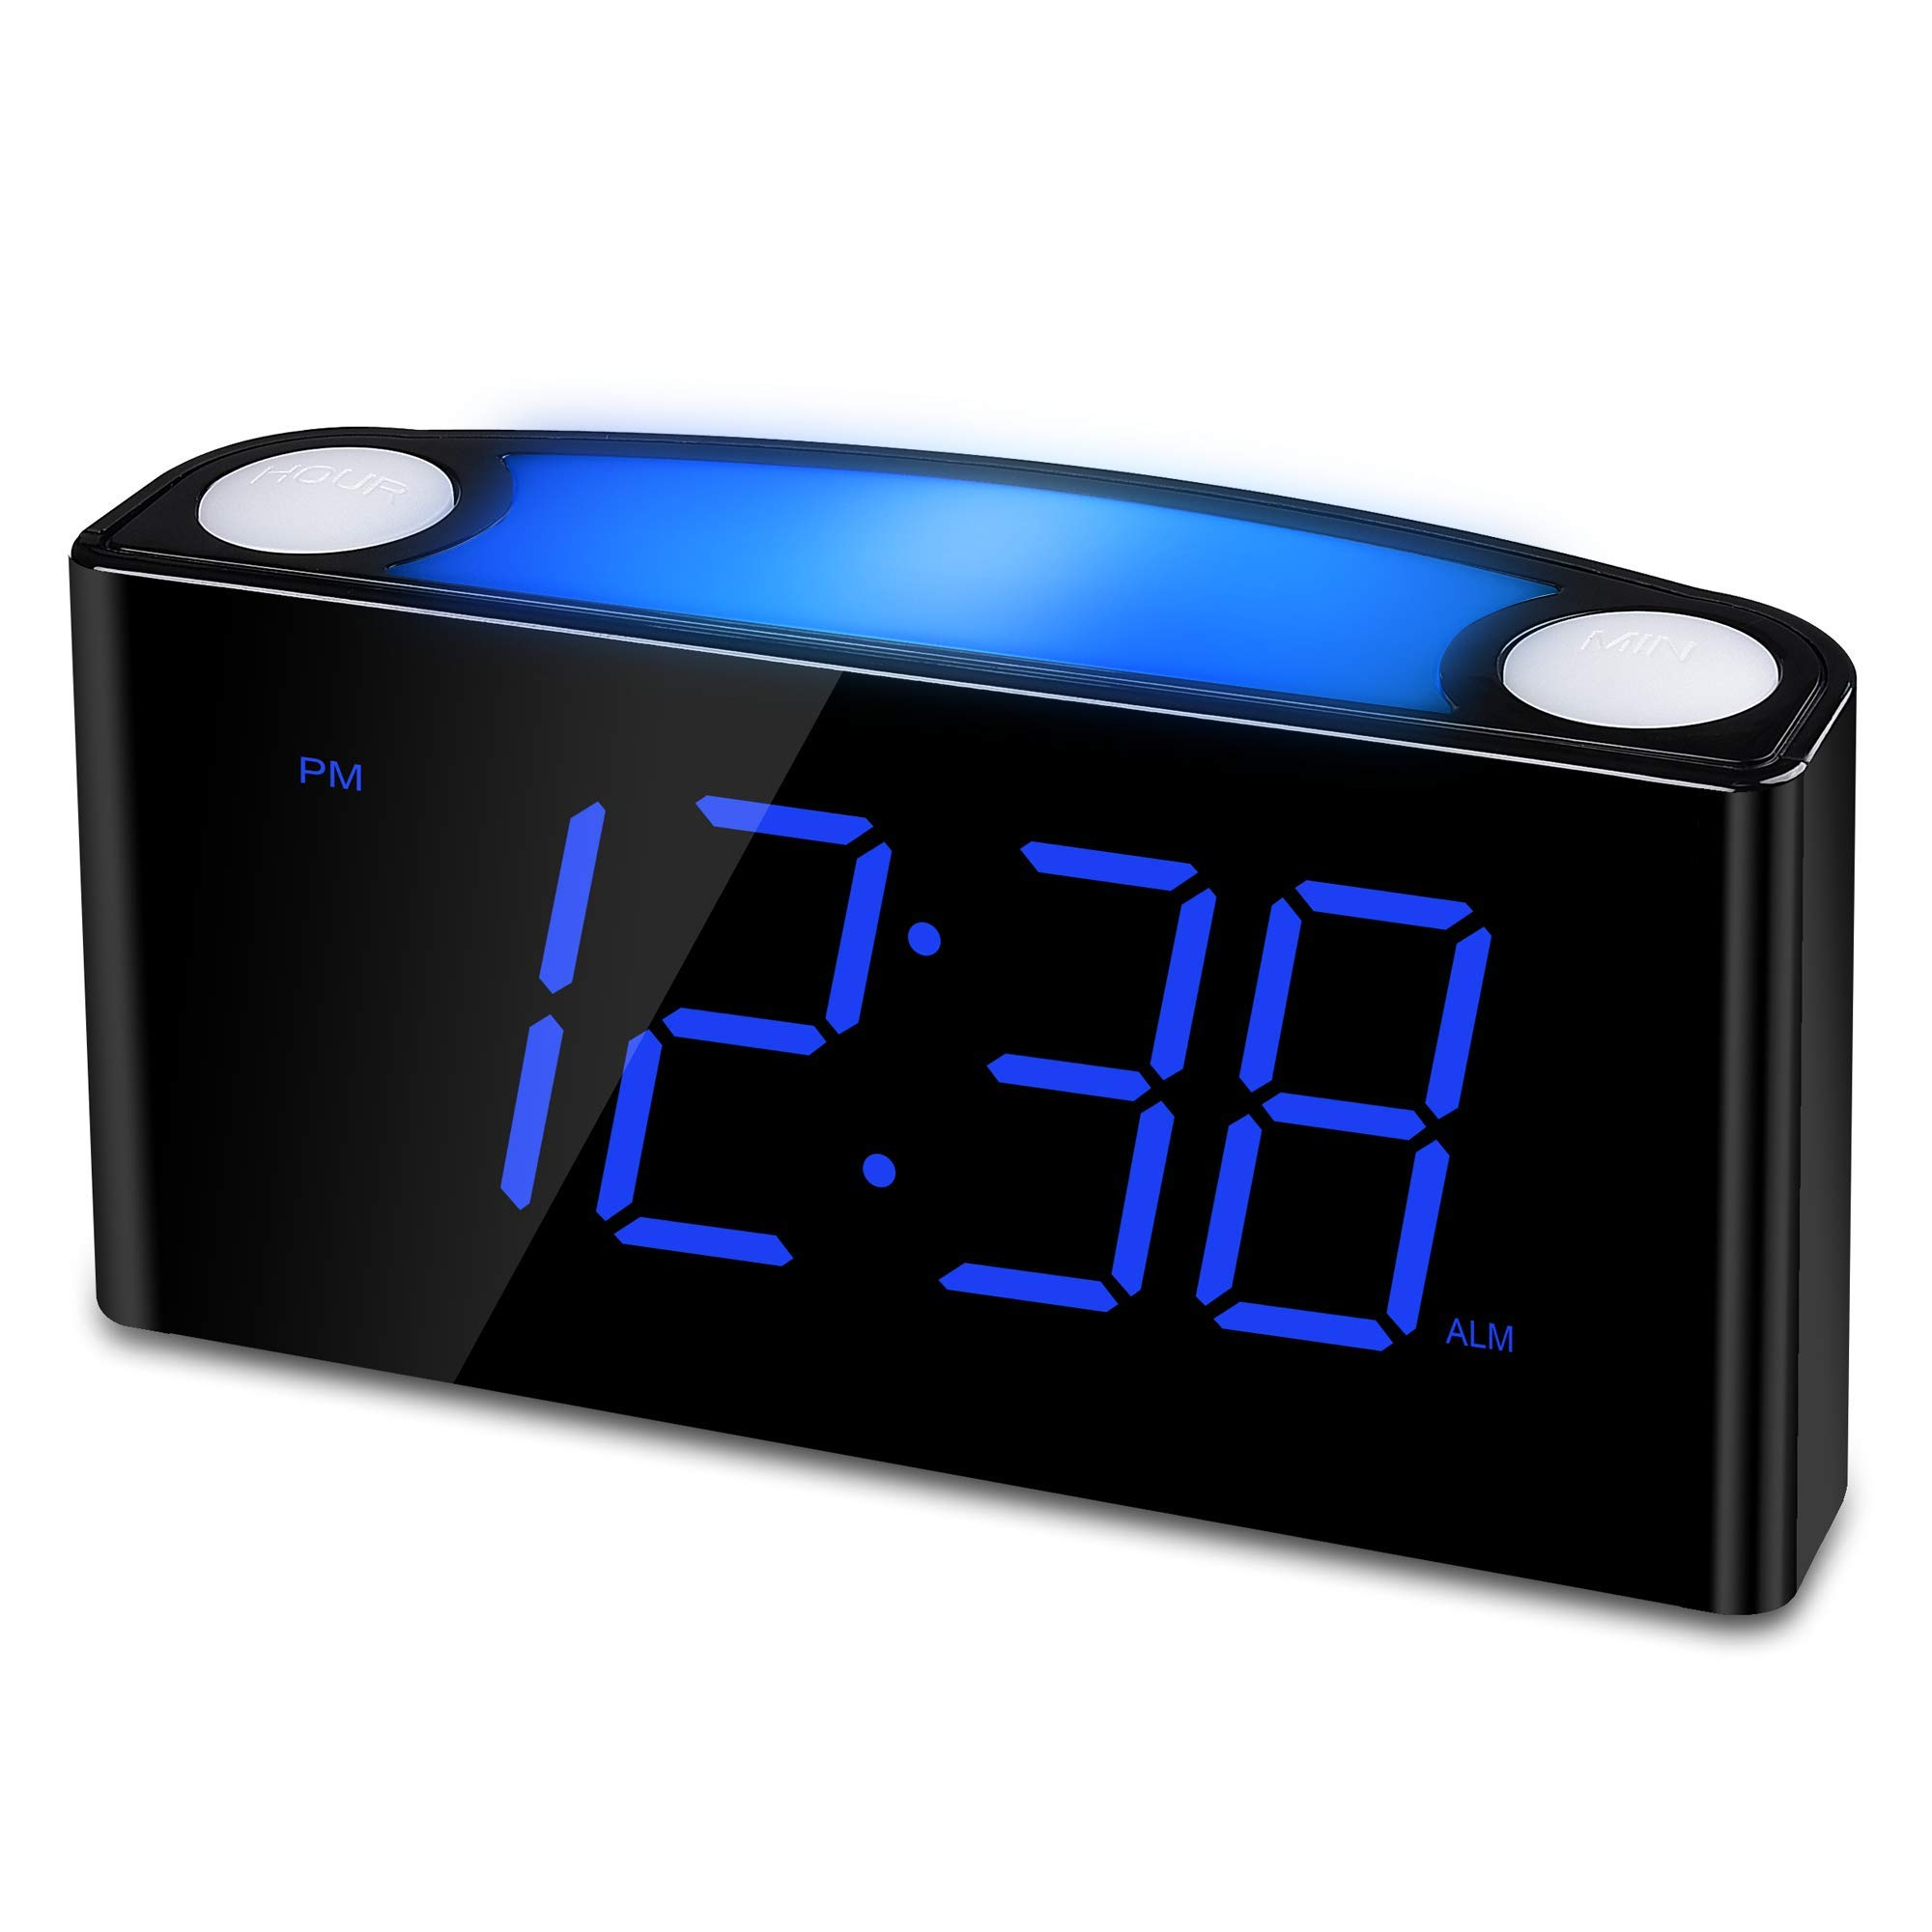 Beautiful blue clock